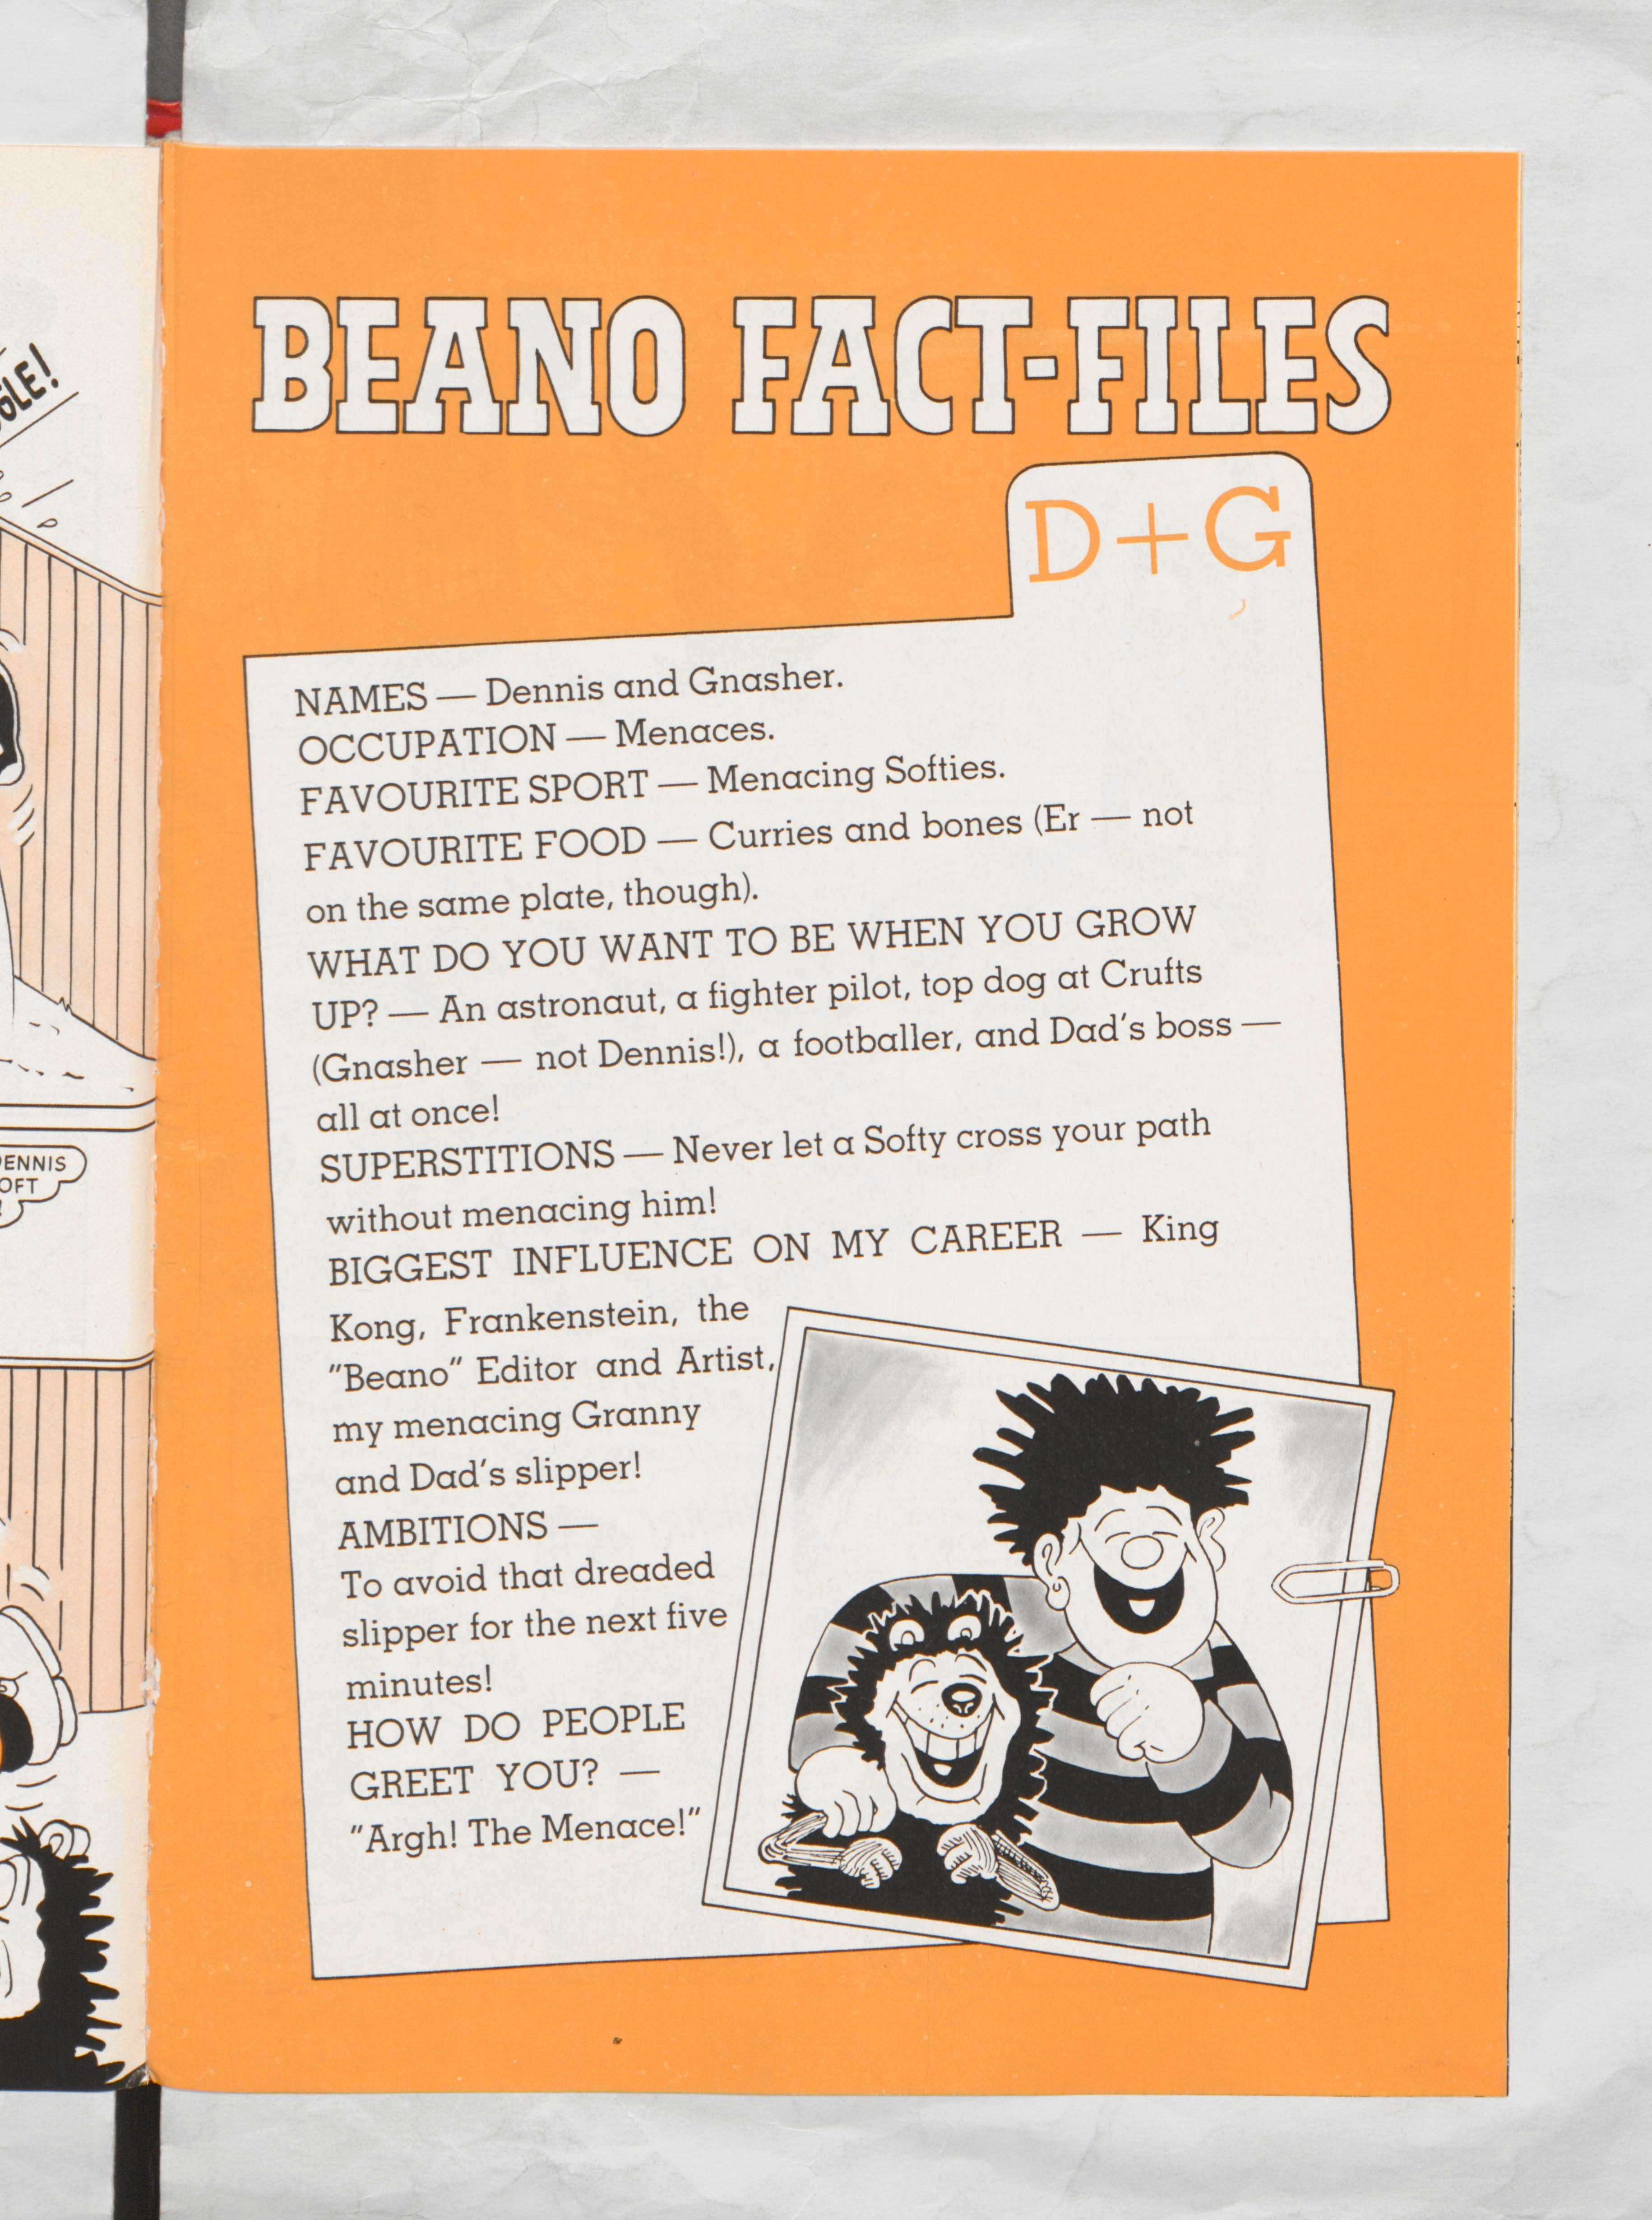 Dennis and Gnasher Beano Book 1987 Annual